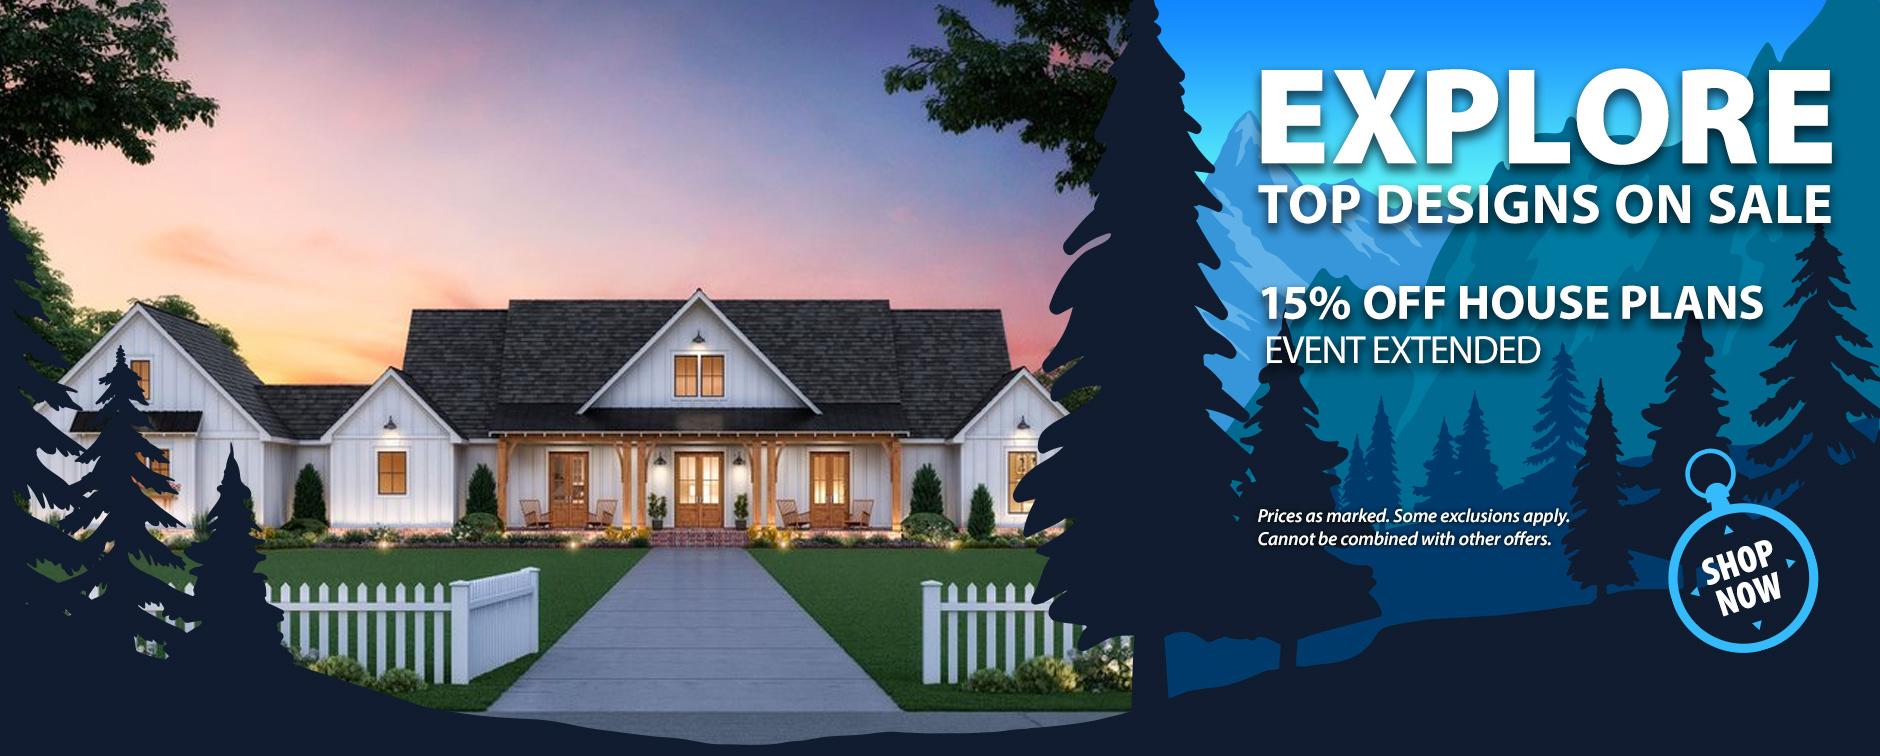 House Plan Sale 15% Off Layouts Ends Soon